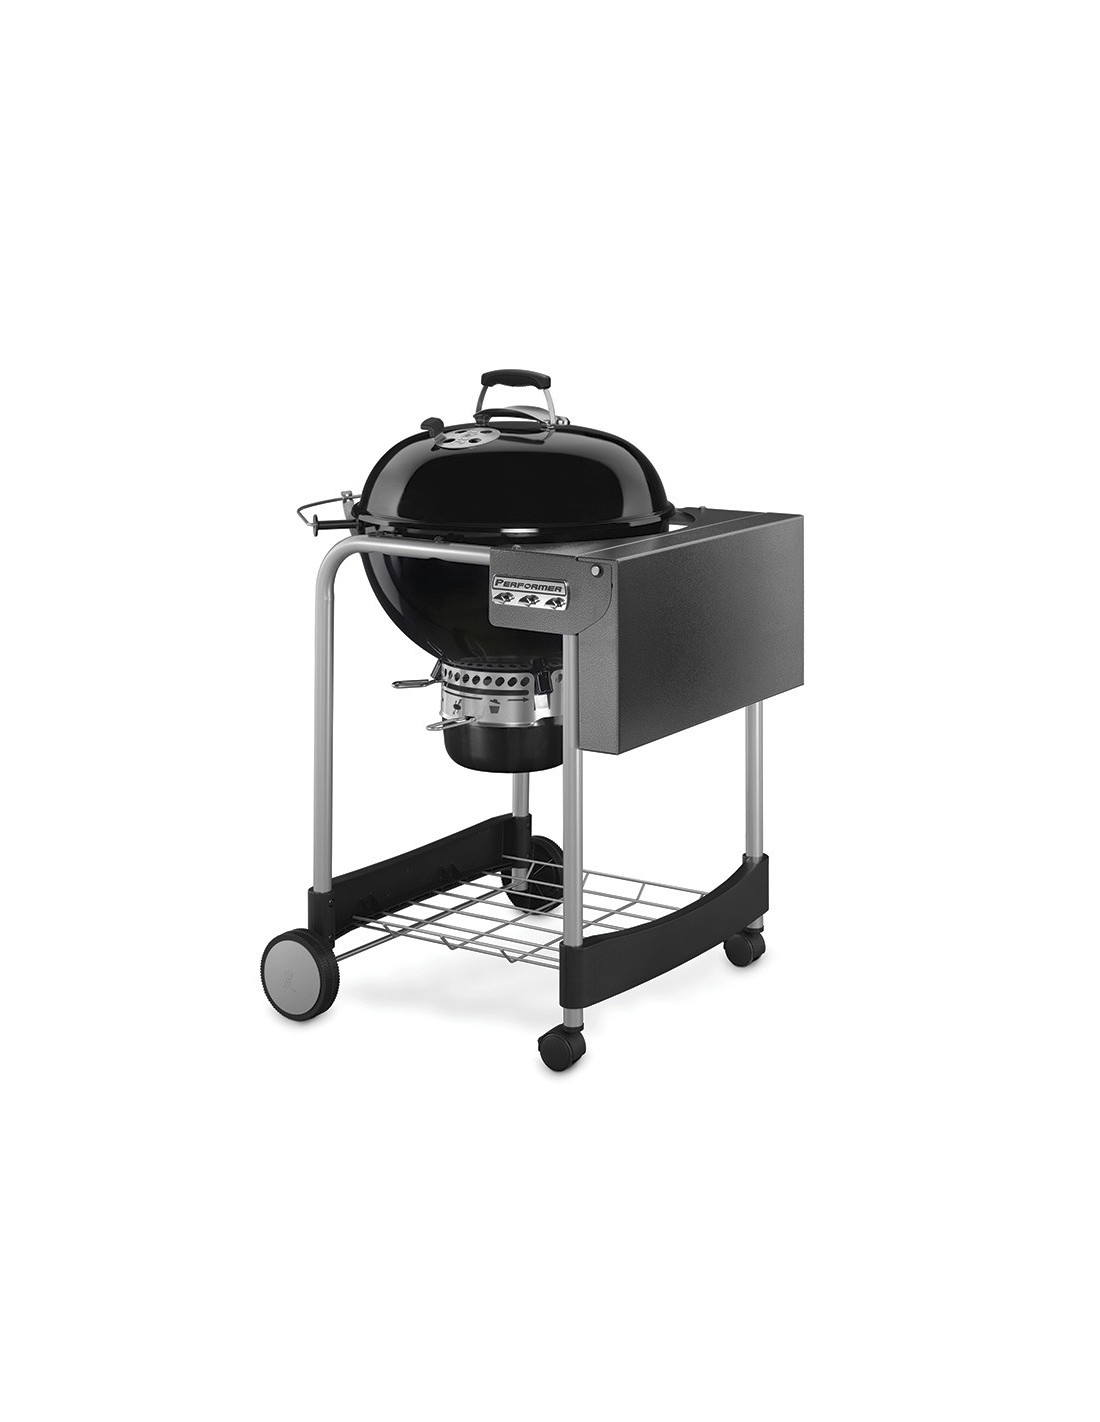 barbecue weber charbon performer original 57cm gbs. Black Bedroom Furniture Sets. Home Design Ideas